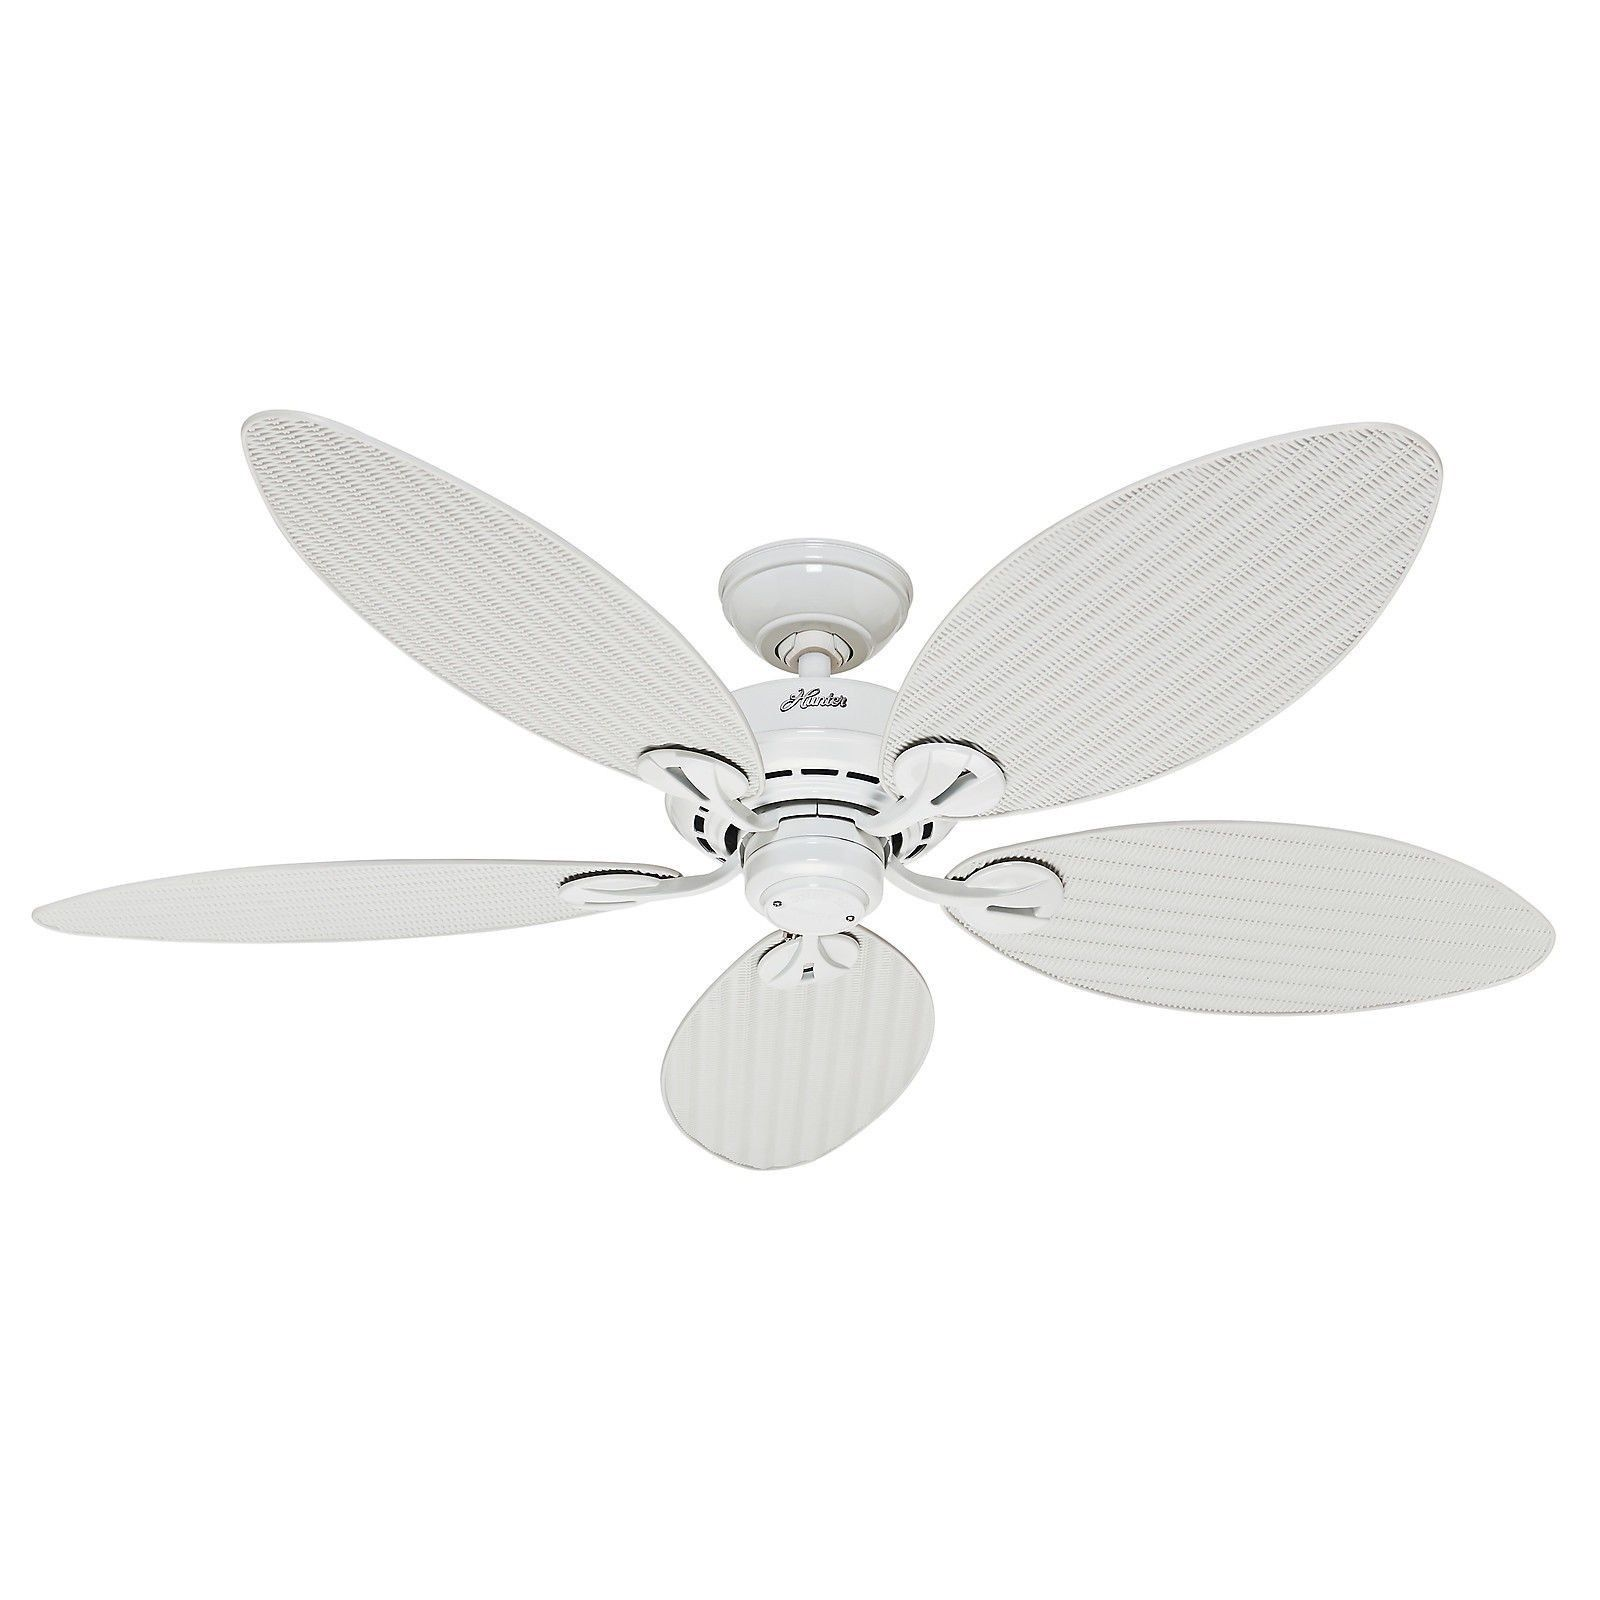 TOP 10 Palm leaf ceiling fans